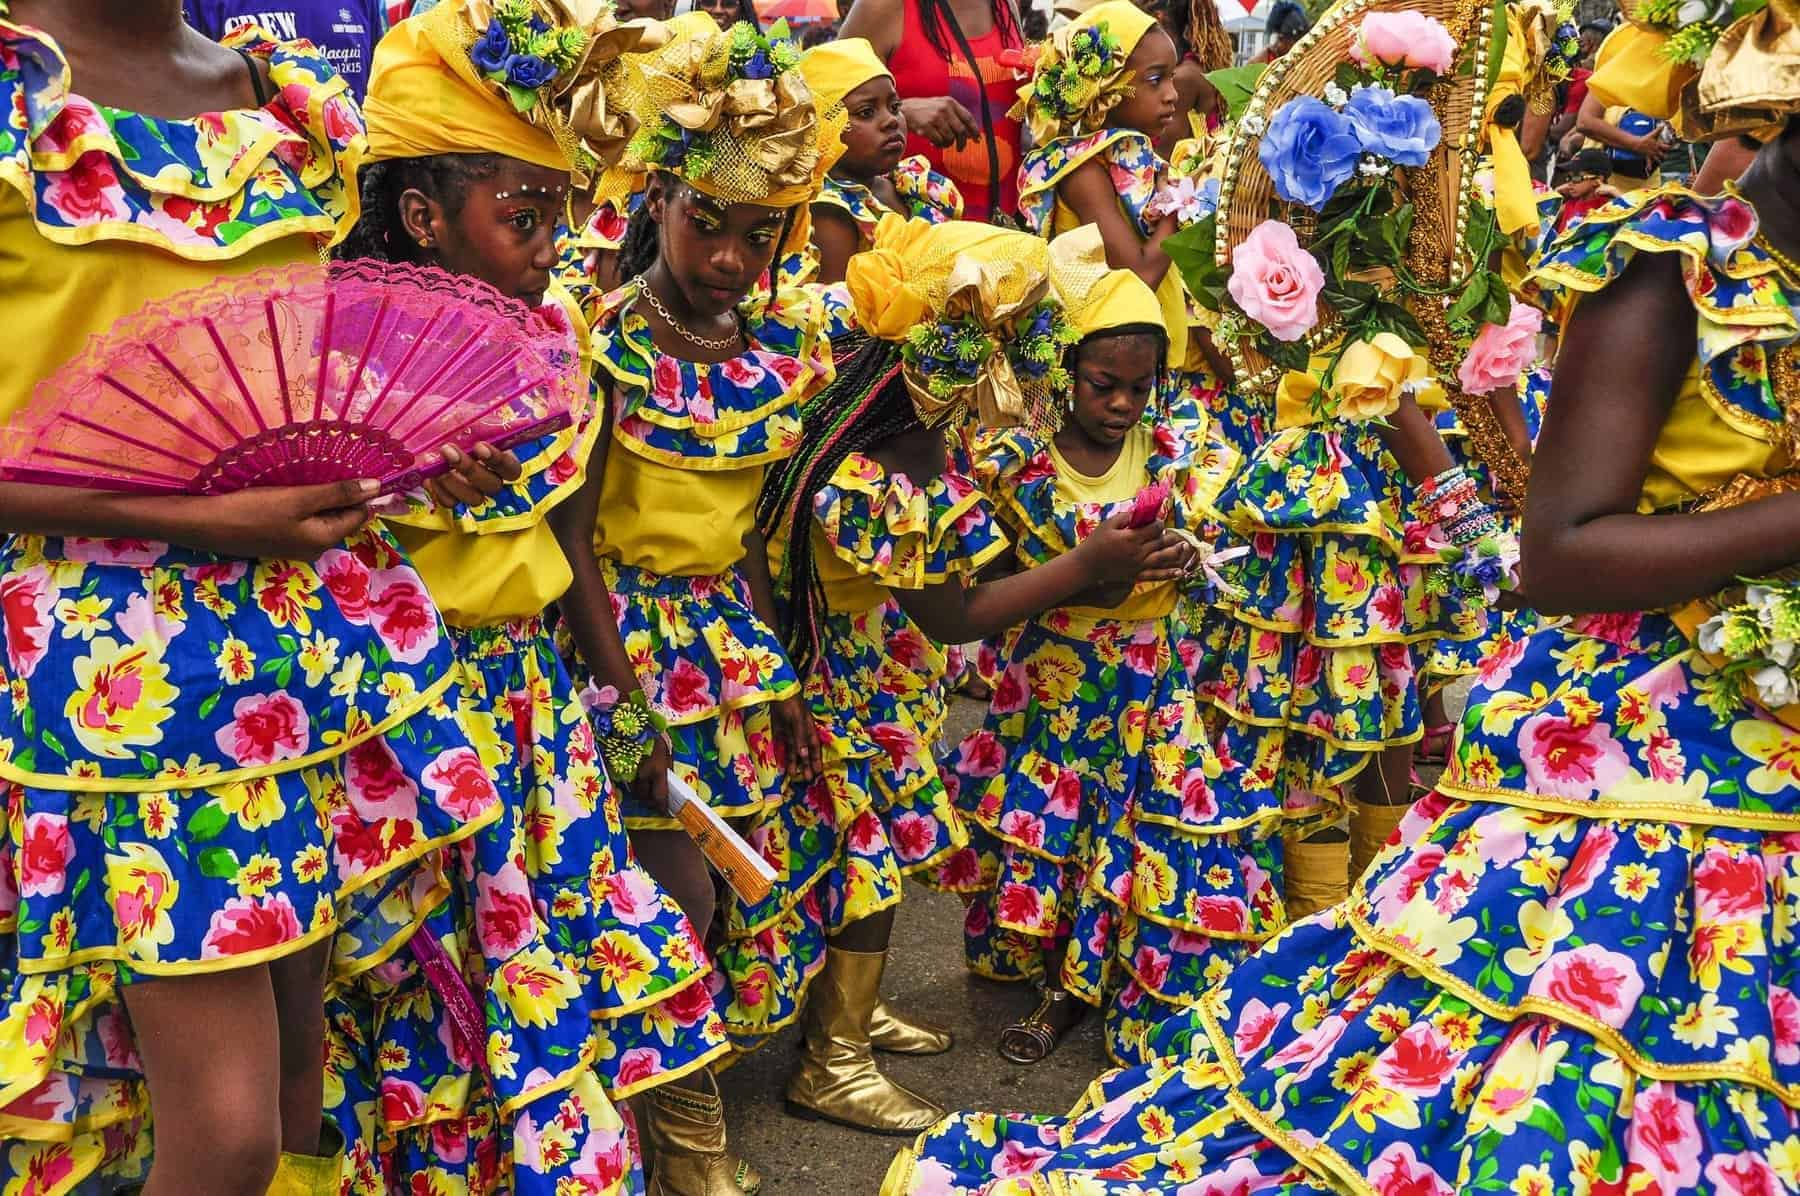 A group of young ladies are dressed in yellow, blue and pink frilly Spanish-styled dresses with head-ties and flowers some carrying fans on Carnival in Trinidad representing the country's Spanish cultural heritage.